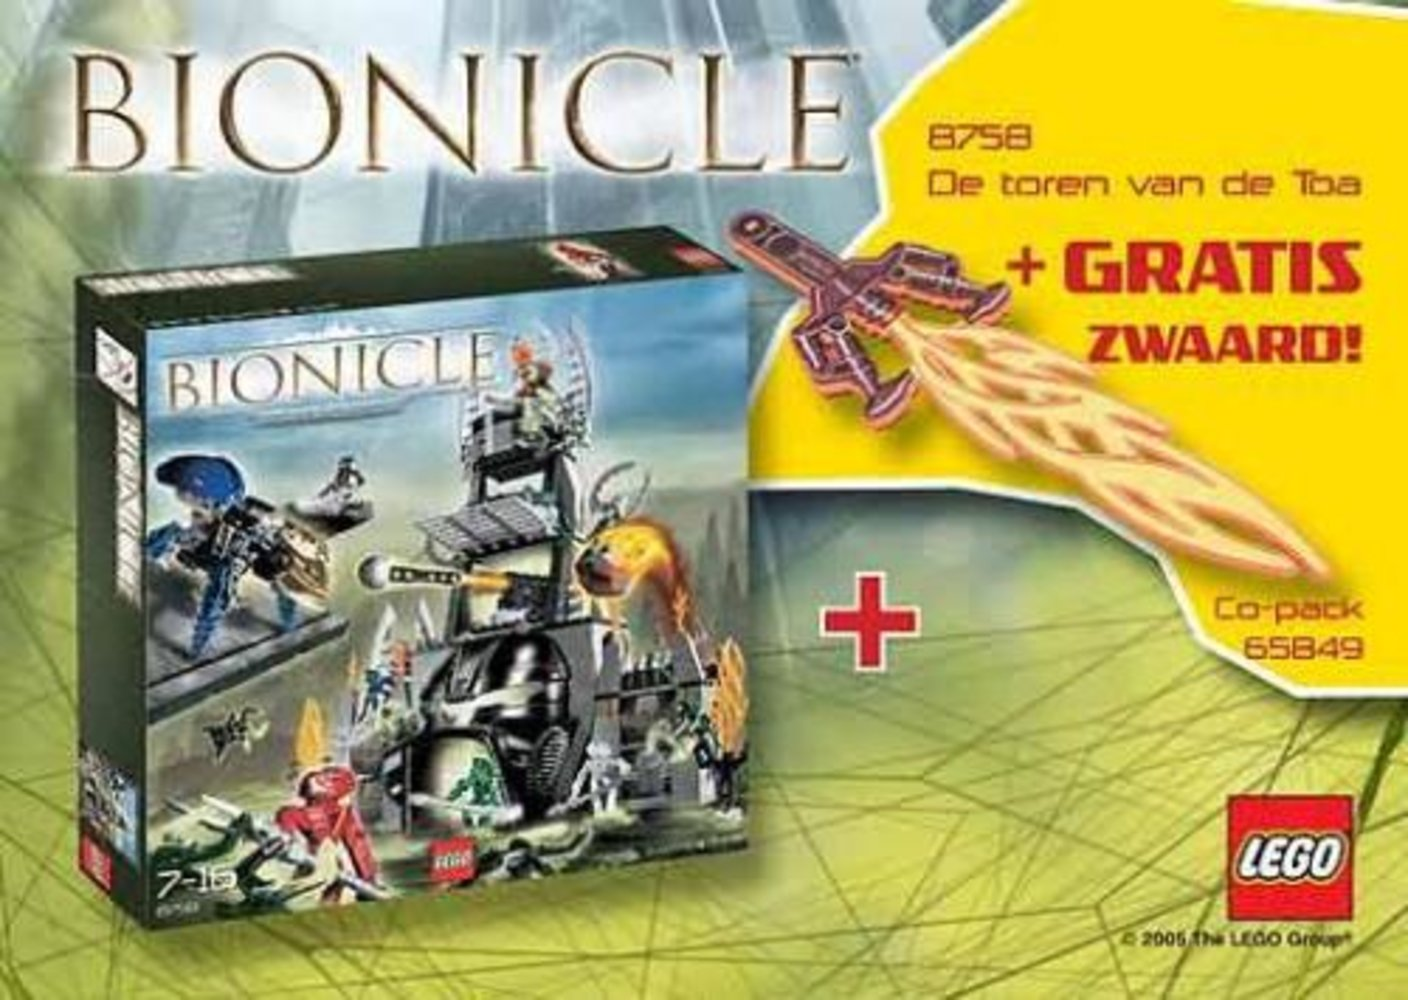 Bionicle Co-Pack (contains 8758 and 851097)